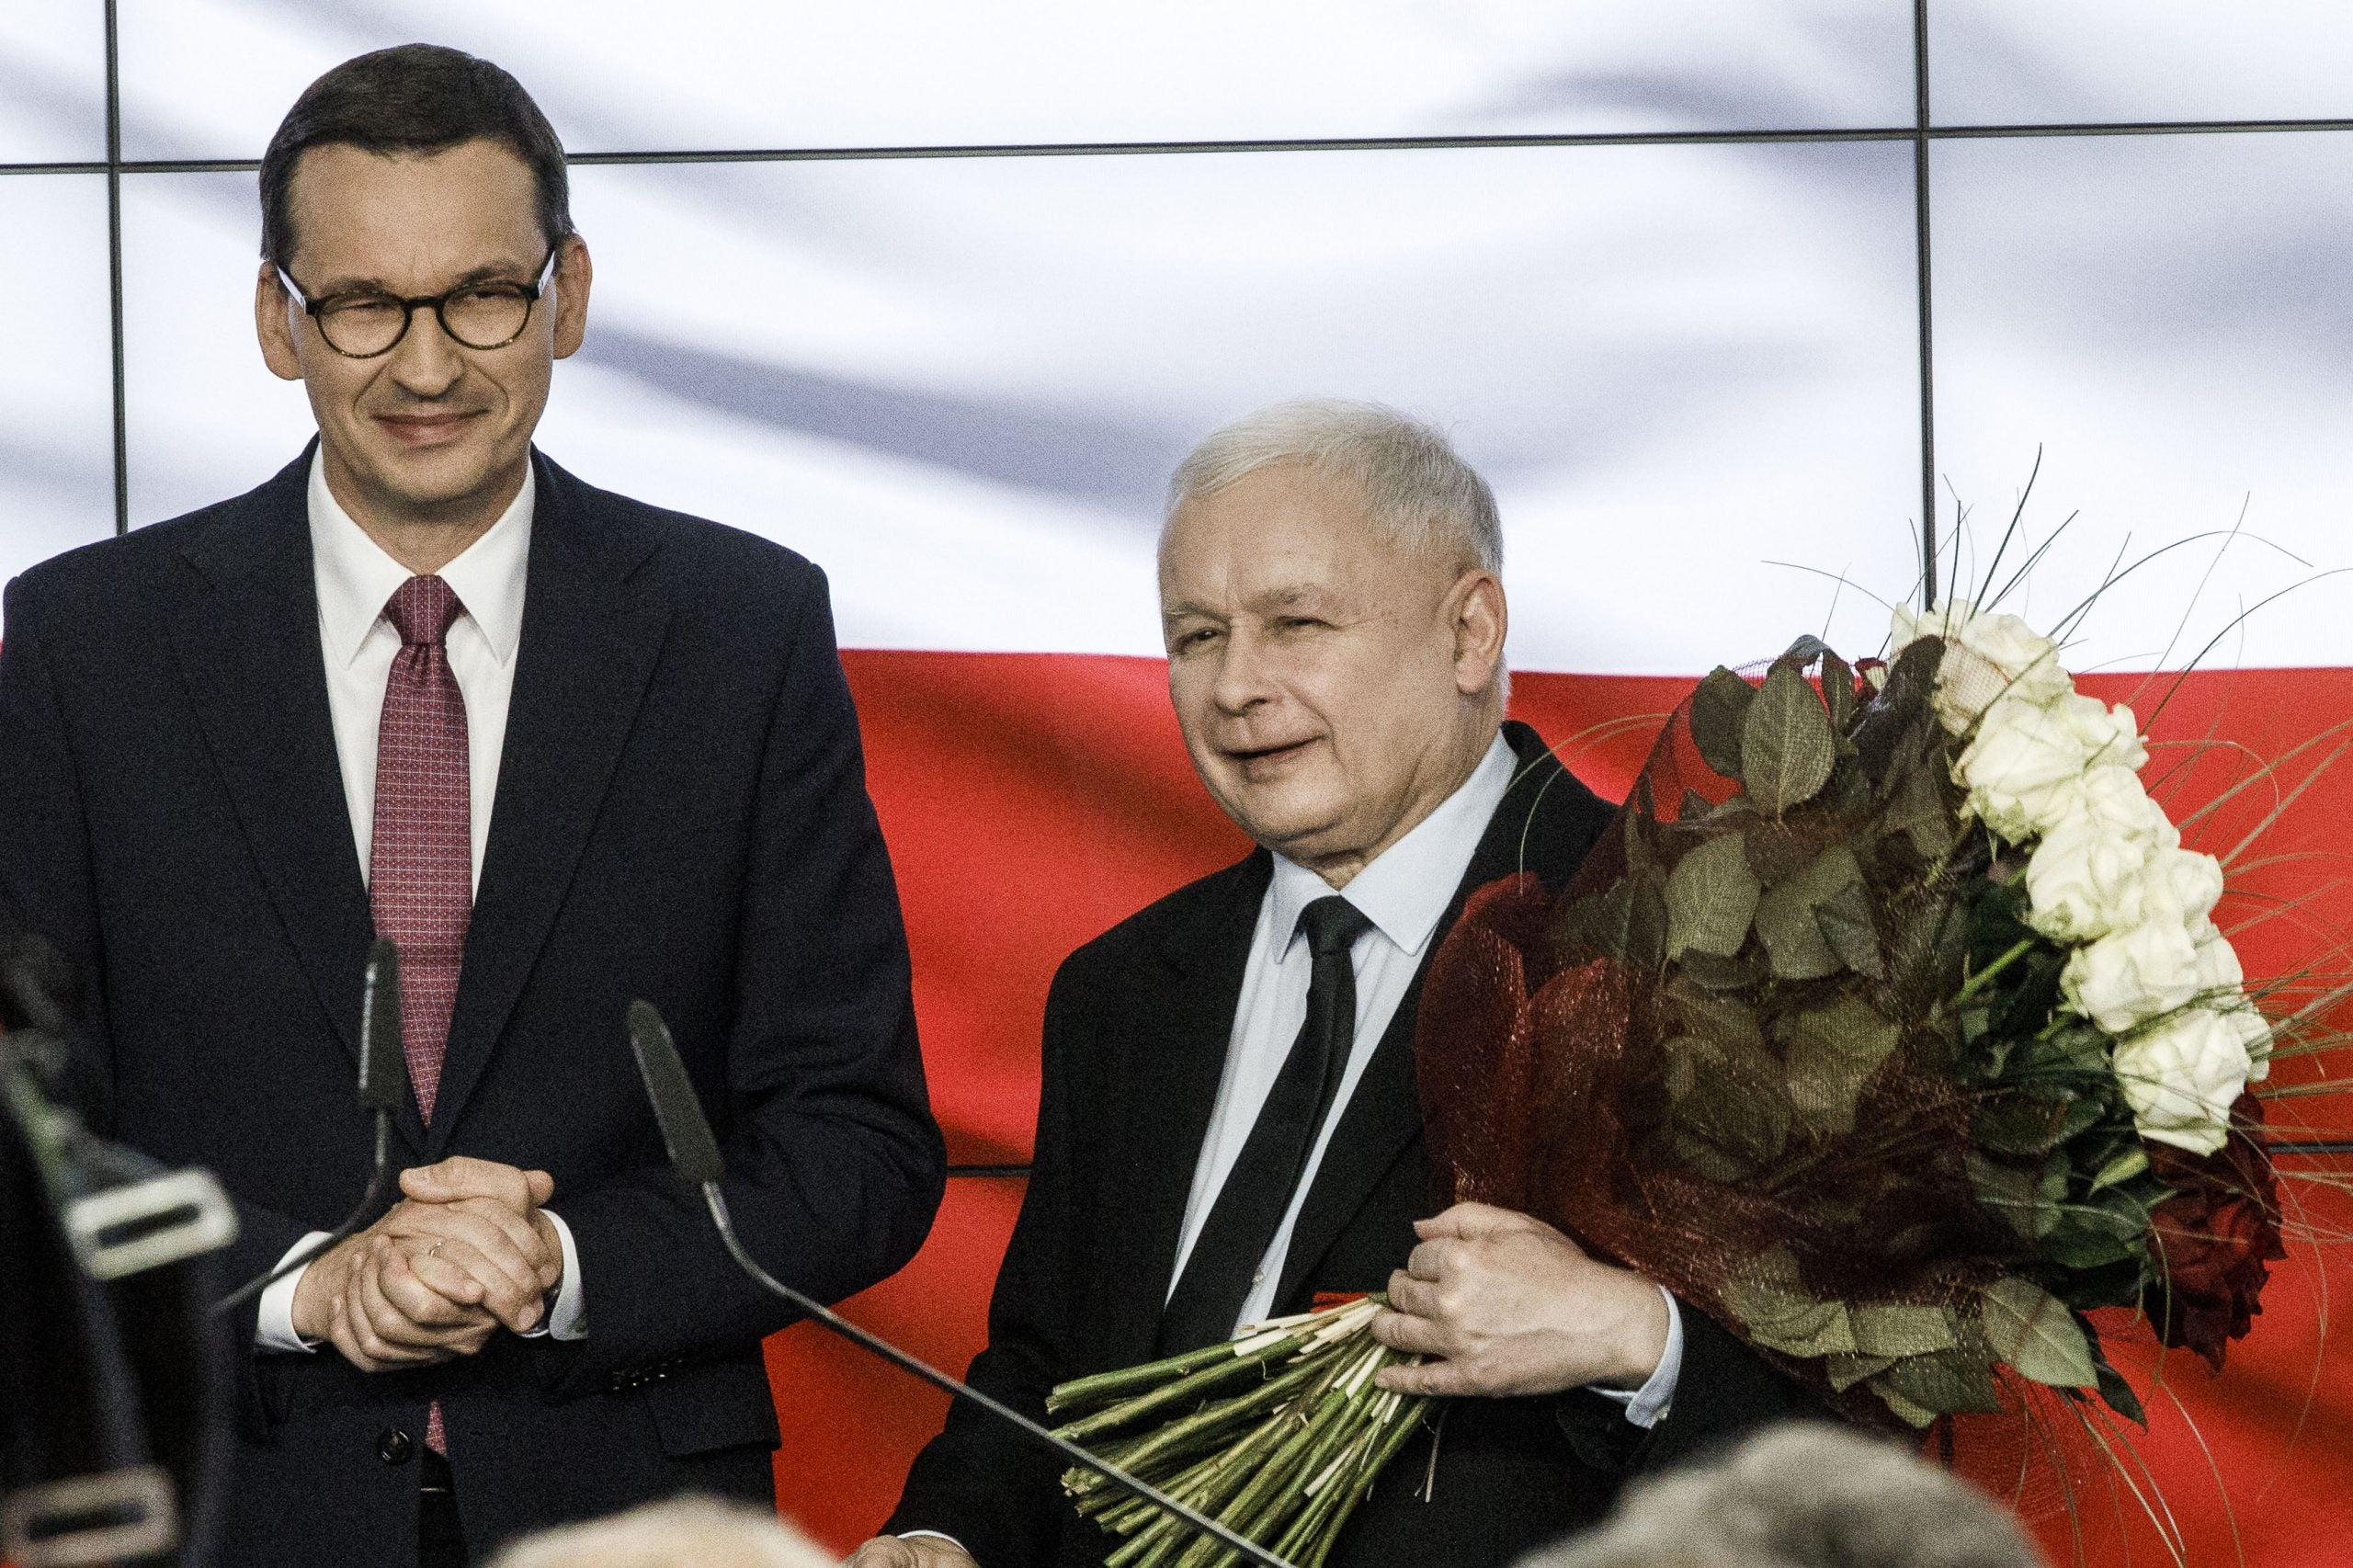 Poland's Law and Justice party has triumphed again by fusing left and right